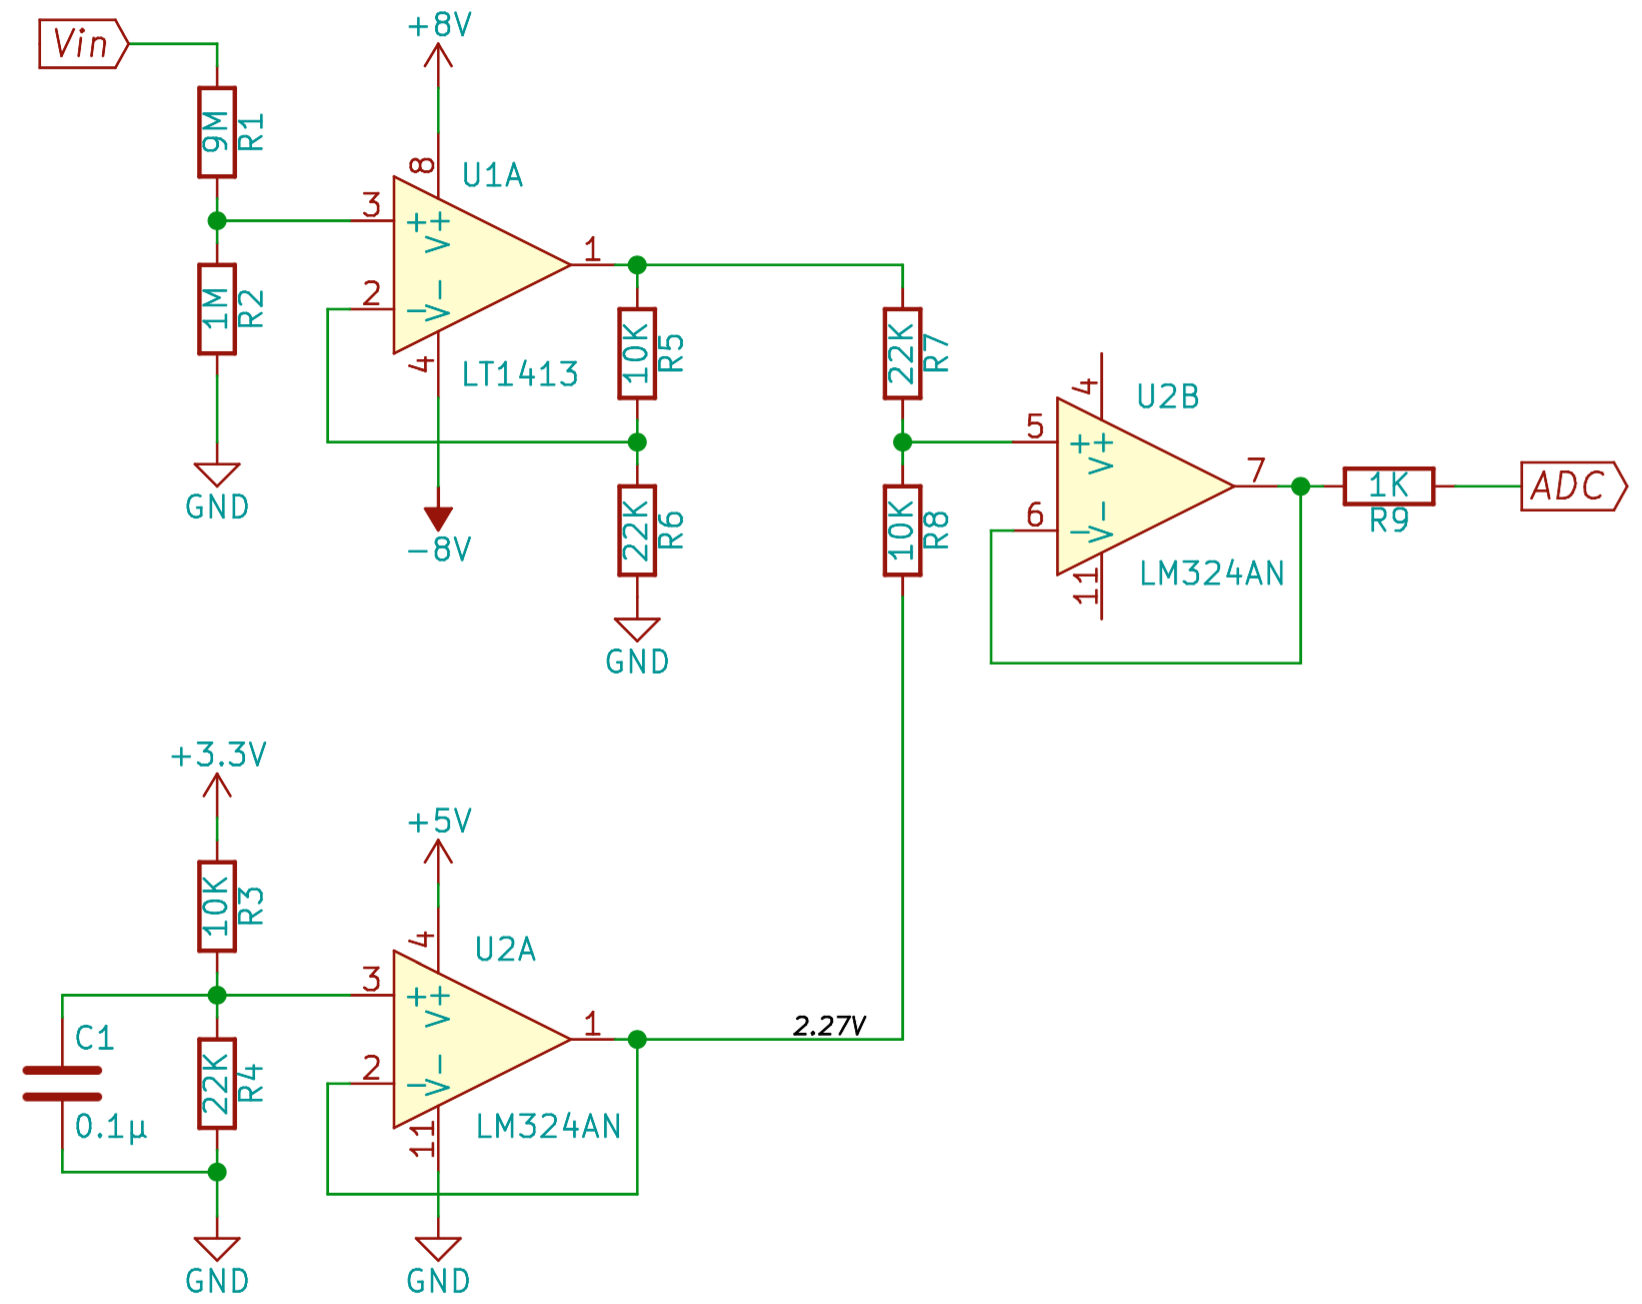 Articles On Jeelabs Simple Parking Sensor Using Lm324 The St232c Chip Was Mounted In A Free Spot With 4x 01f Caps Needed To Make It Generate About 9v Heres Corresponding Circuit